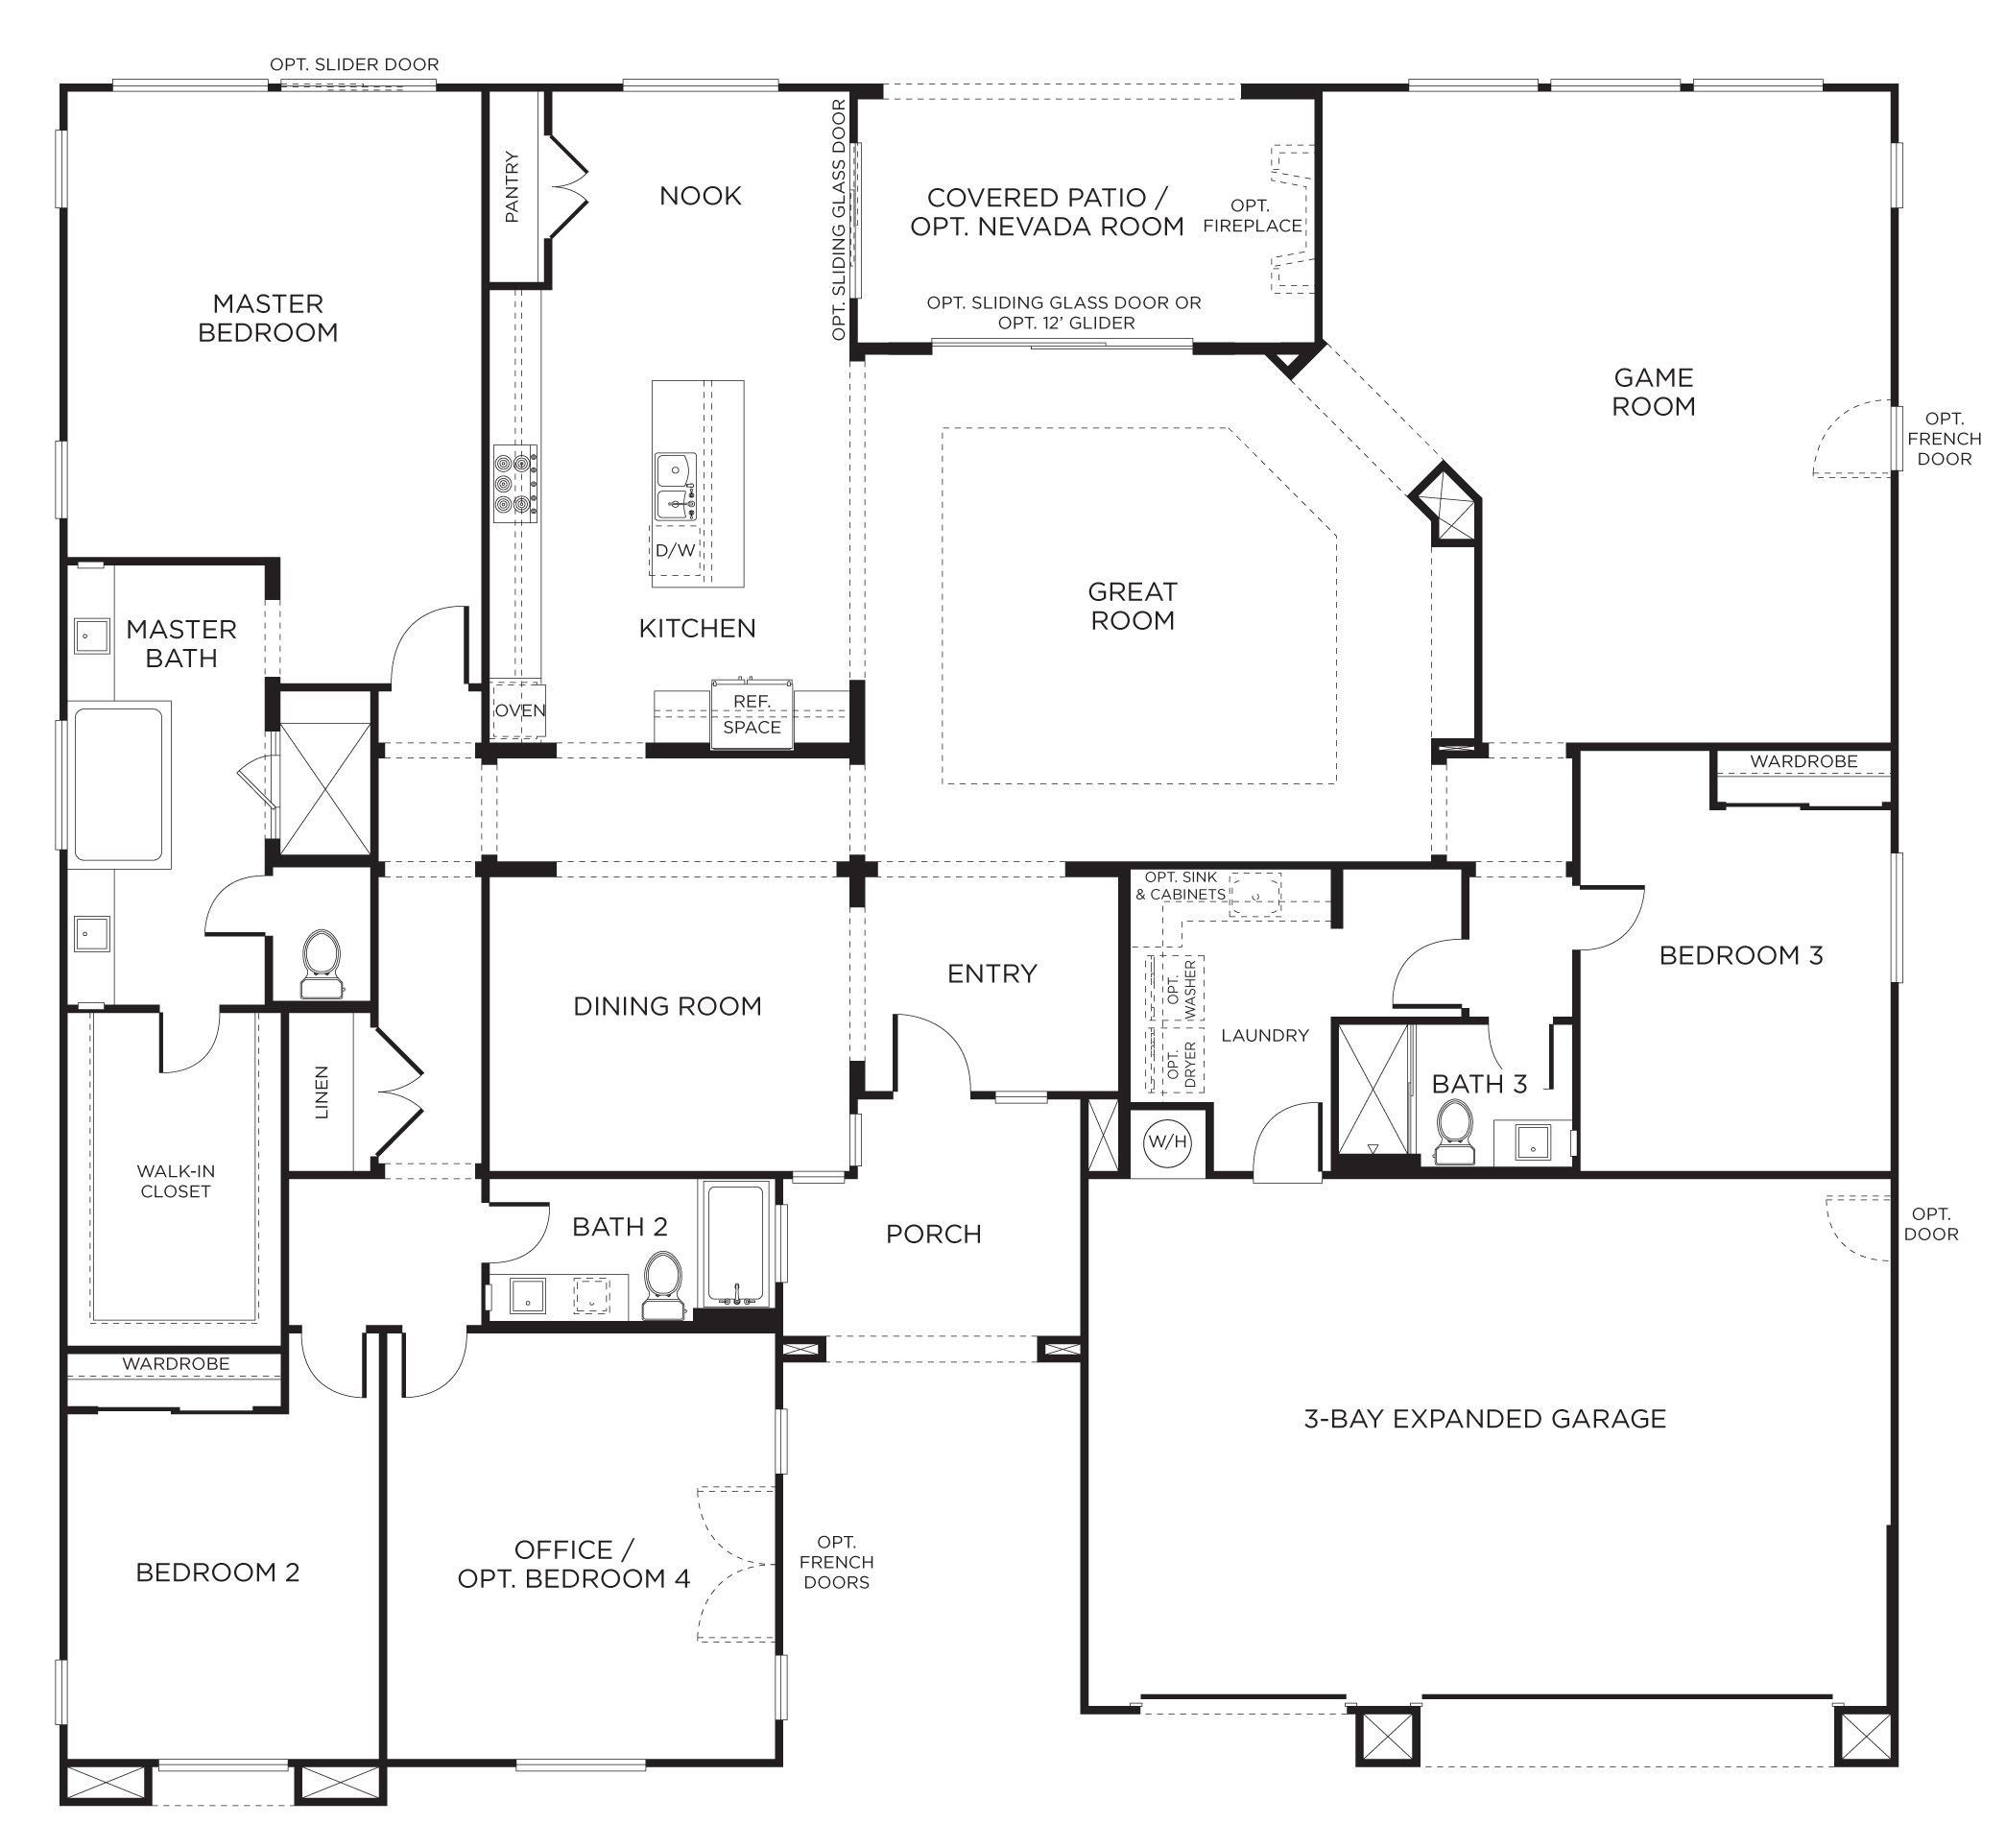 Floorplan 2 3 4 bedrooms 3 bathrooms 3400 square feet Single room house design